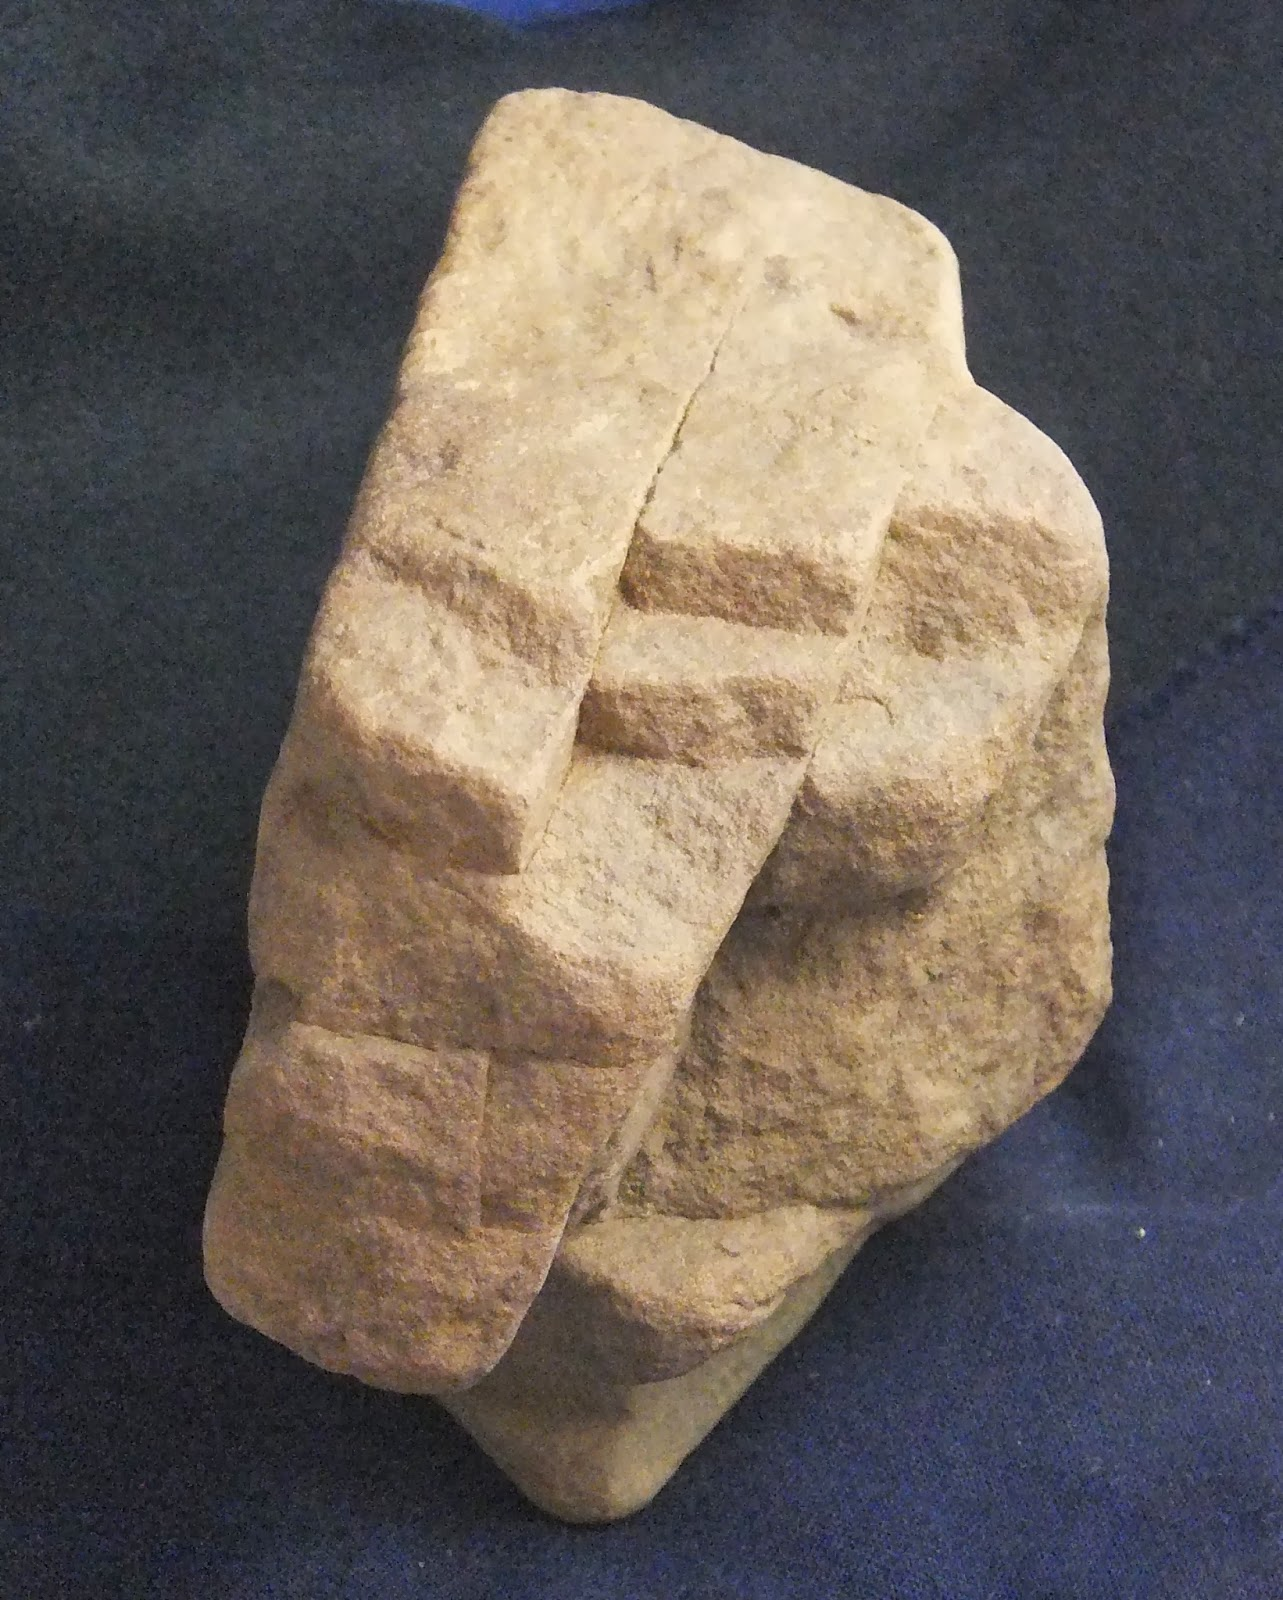 Ancient American Stone Art Did You Know That Ancient Americans Carved Stone